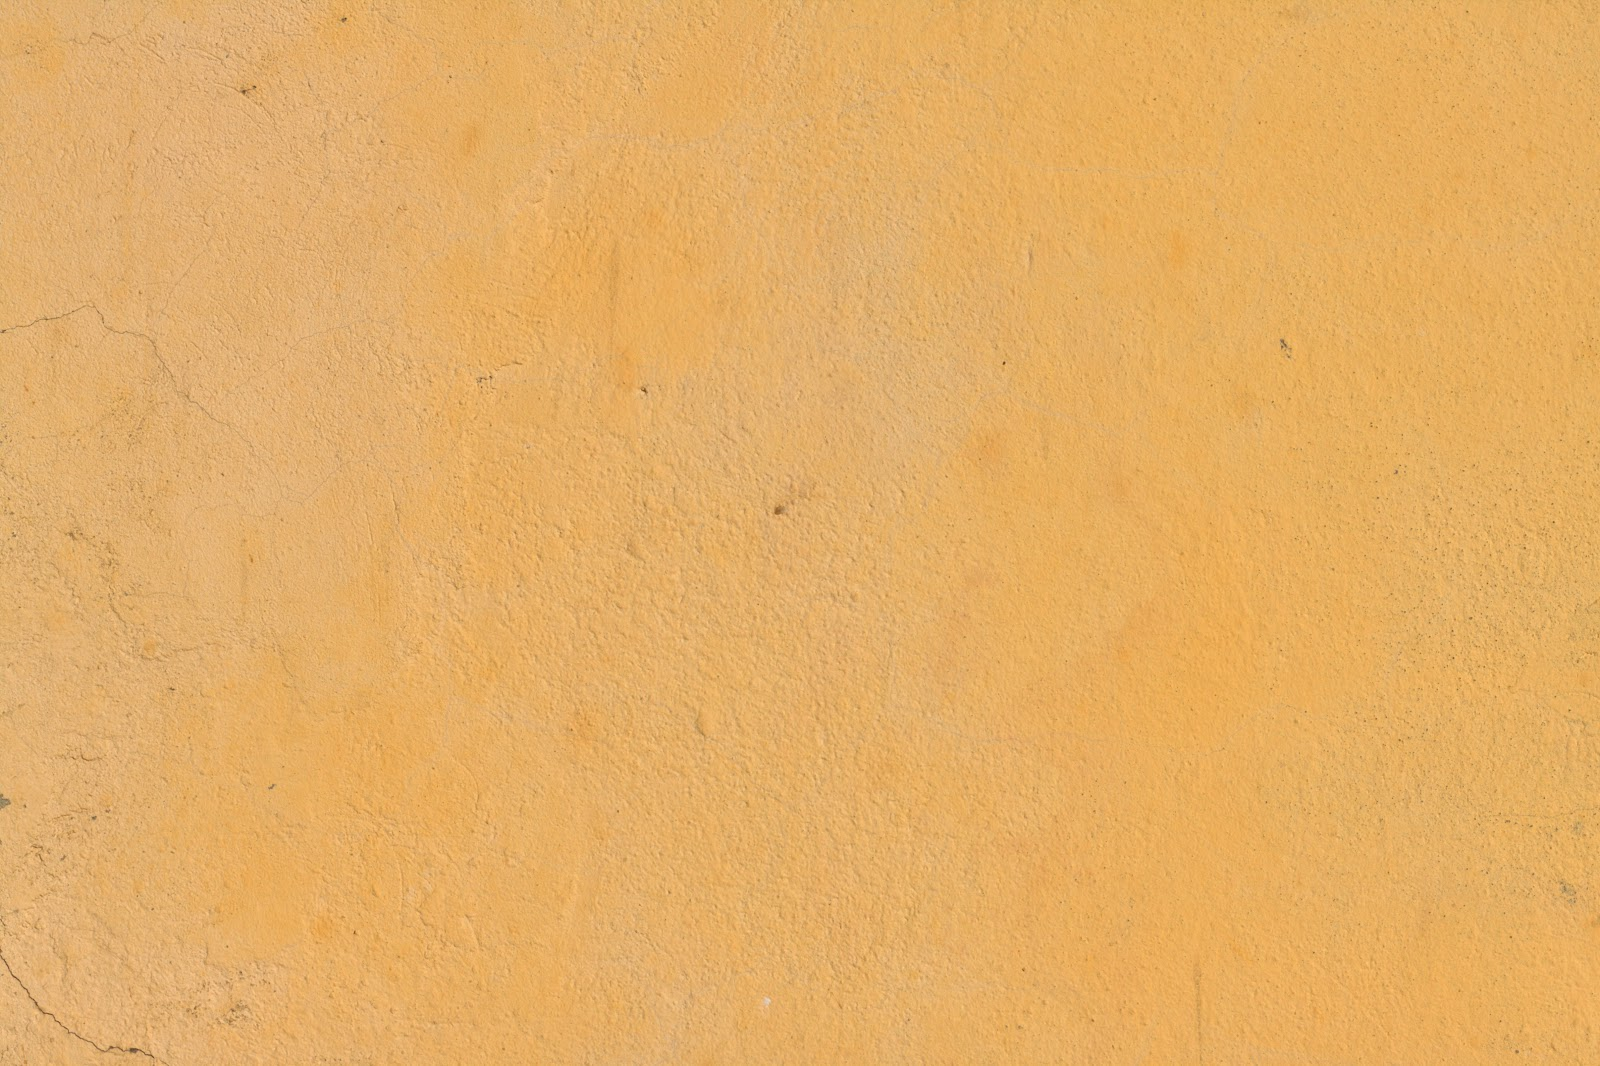 Stucco light orange wall plaster texture 4770x3178